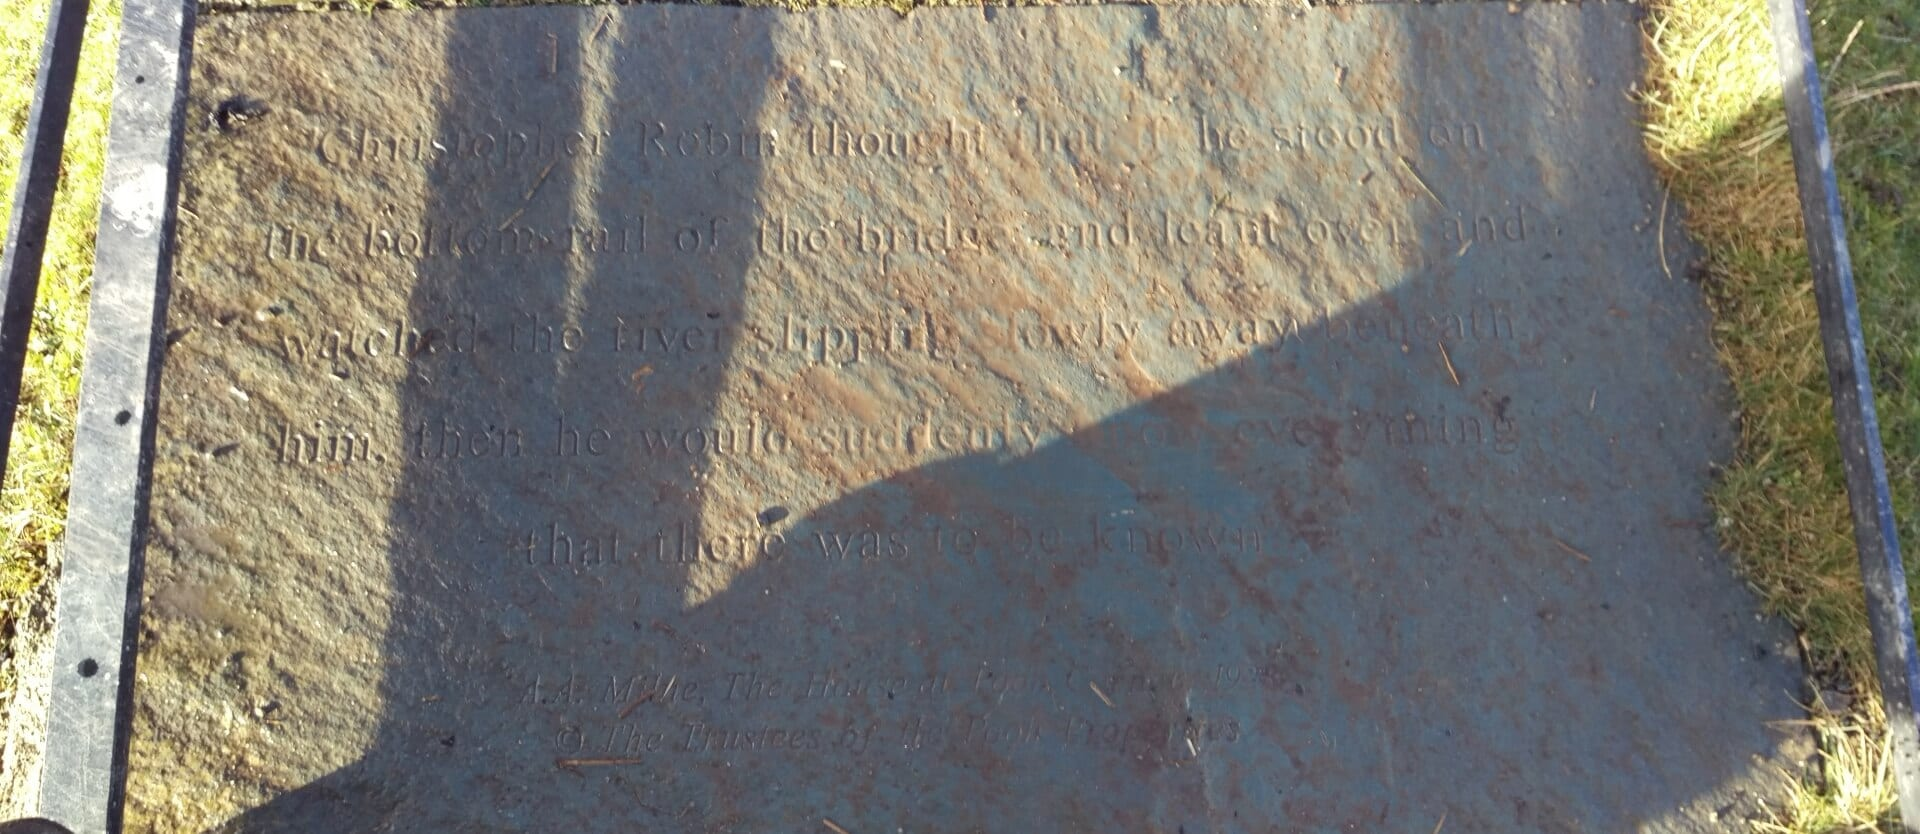 Inscription on bridge in Keswick Park